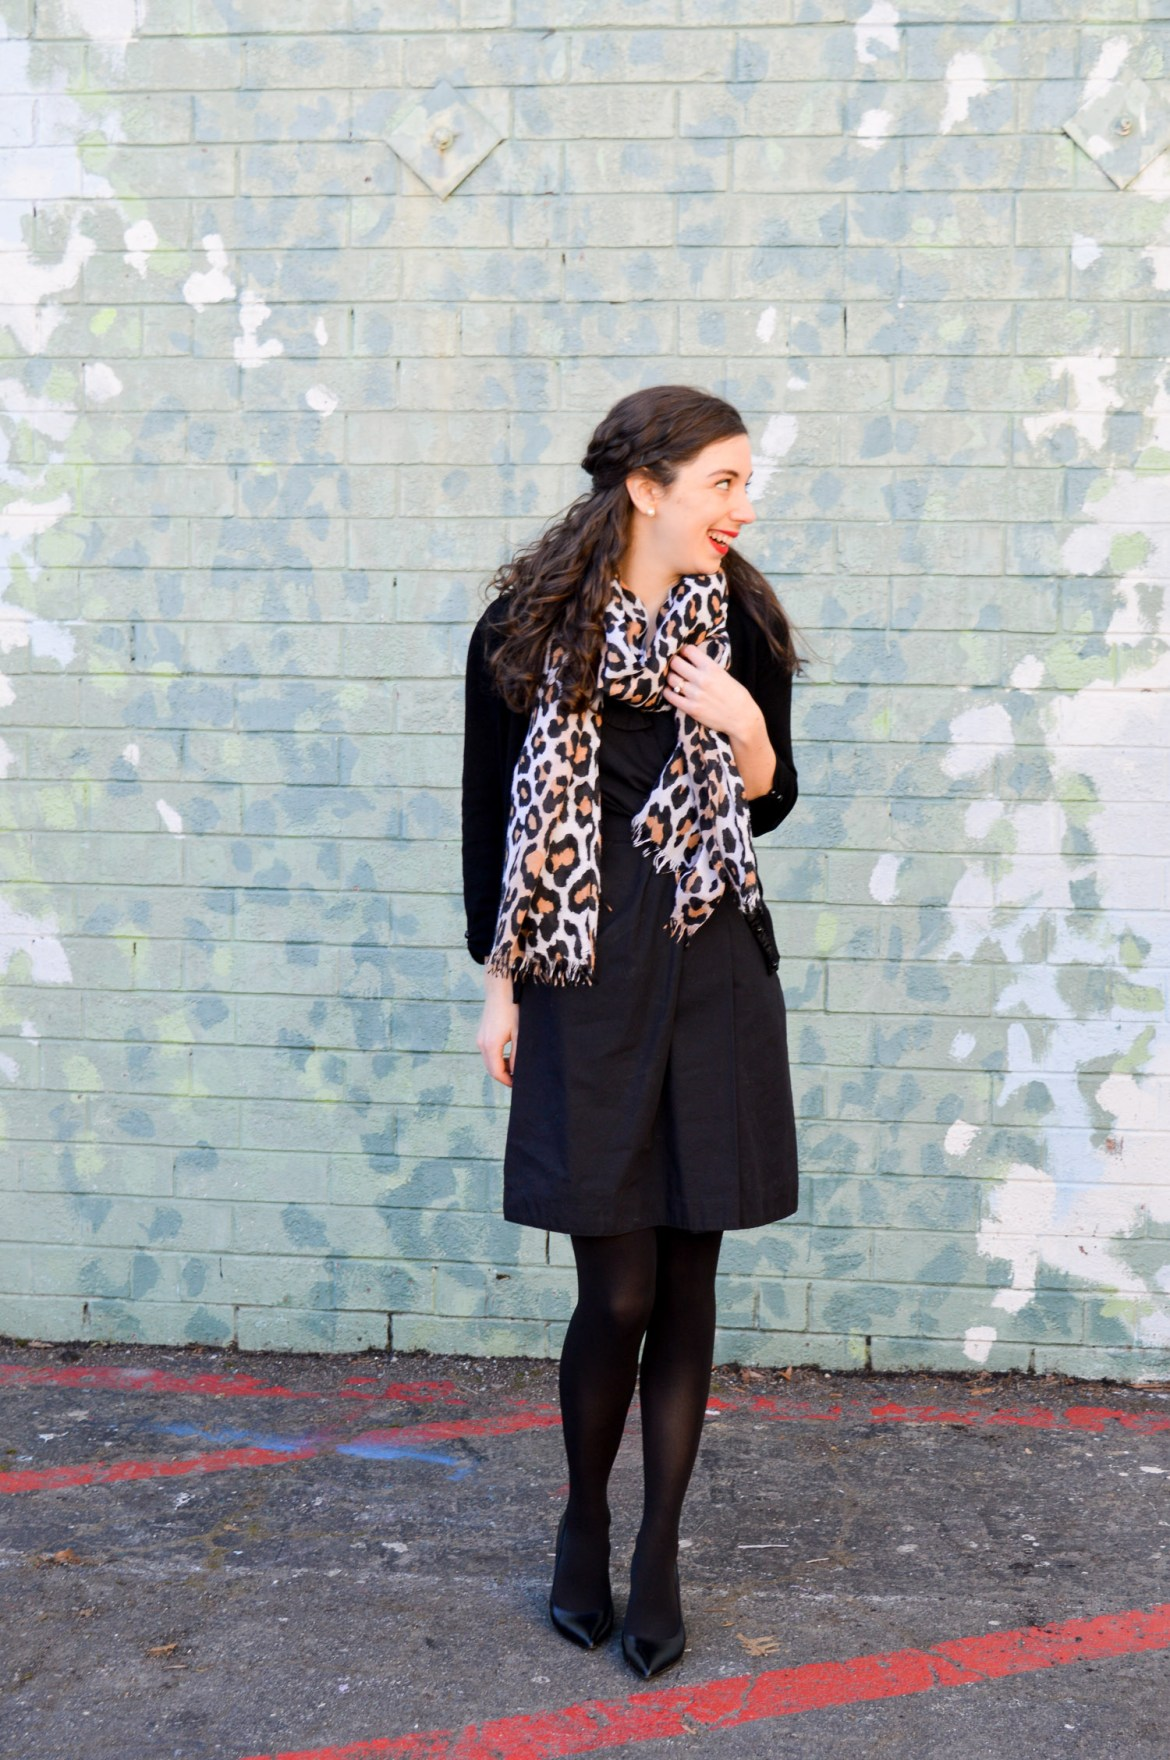 All-black outfit with a leopard print scarf // Hunting for Pink Flamingos